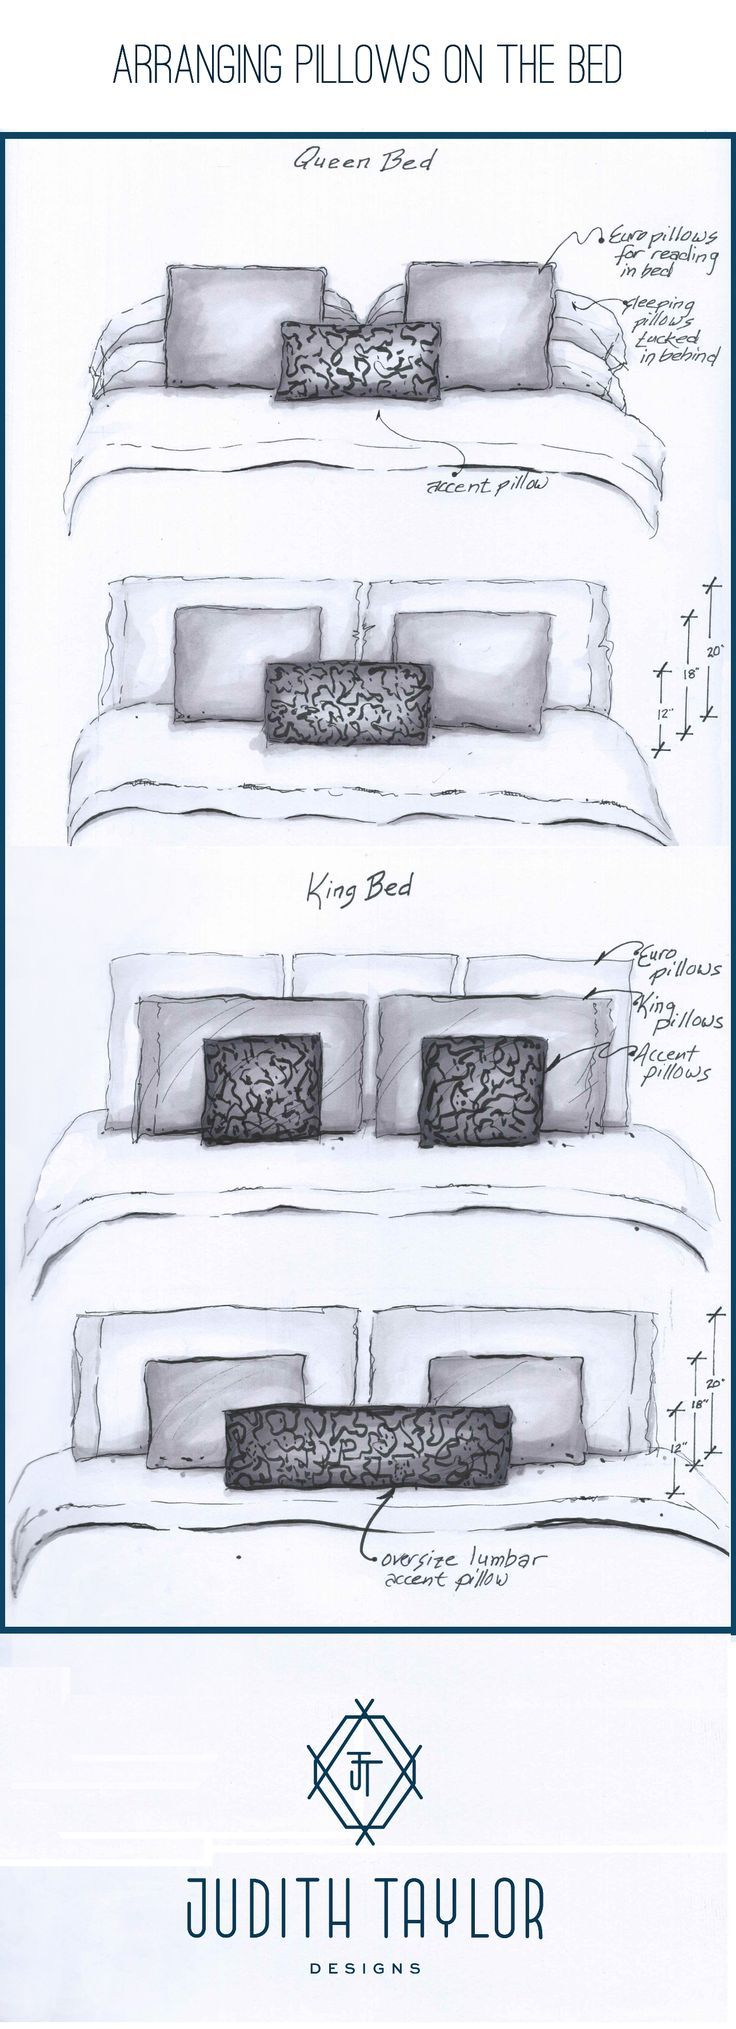 Letto Queen Size Misure.Arrangement And Sizing For Pillows On Queen And King Bed Www